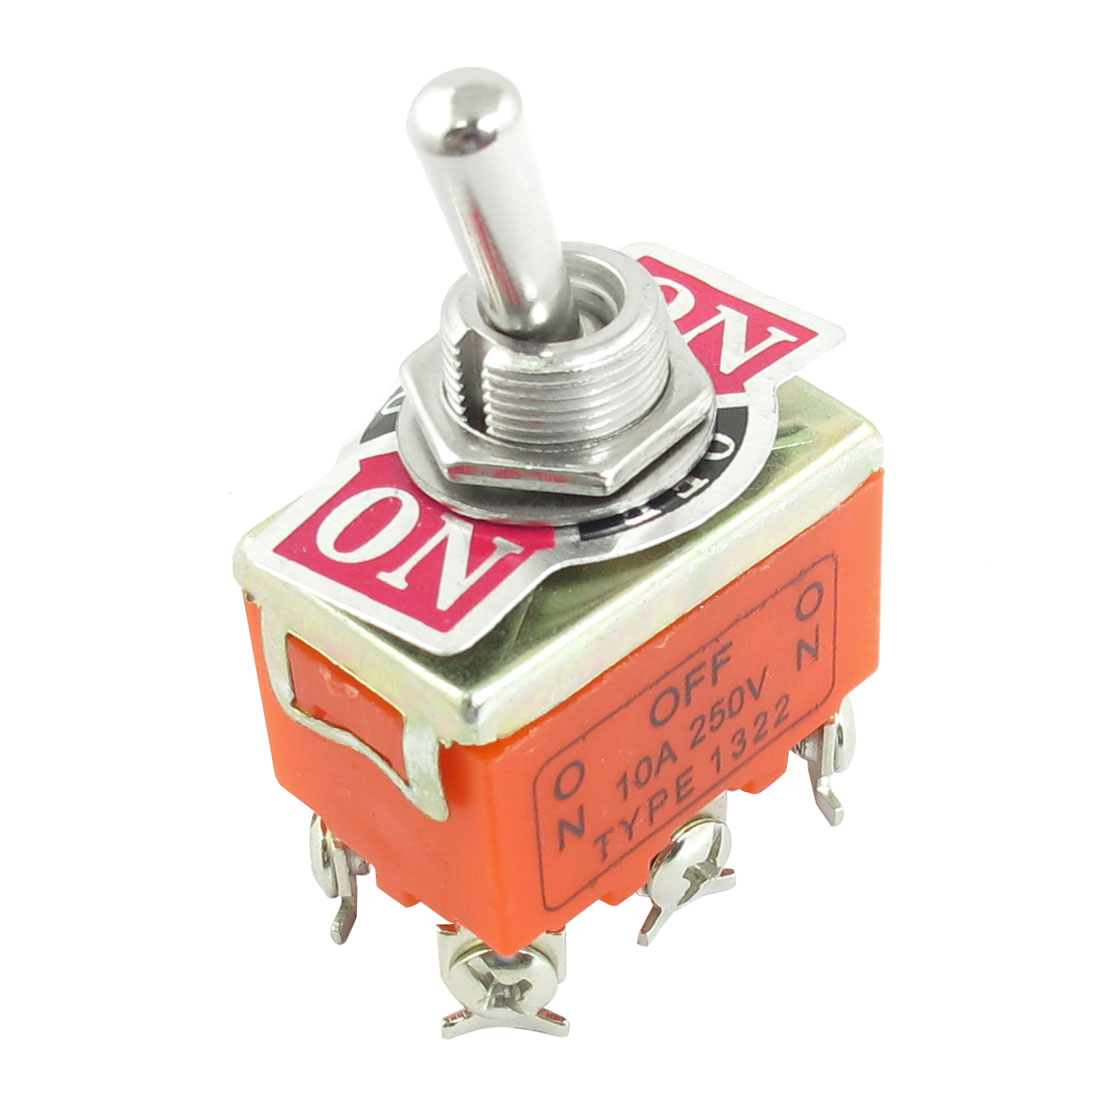 AC 250V 10A Latching On-Off-On 6 Terminal Double Pole Single Throw Toggle Switch